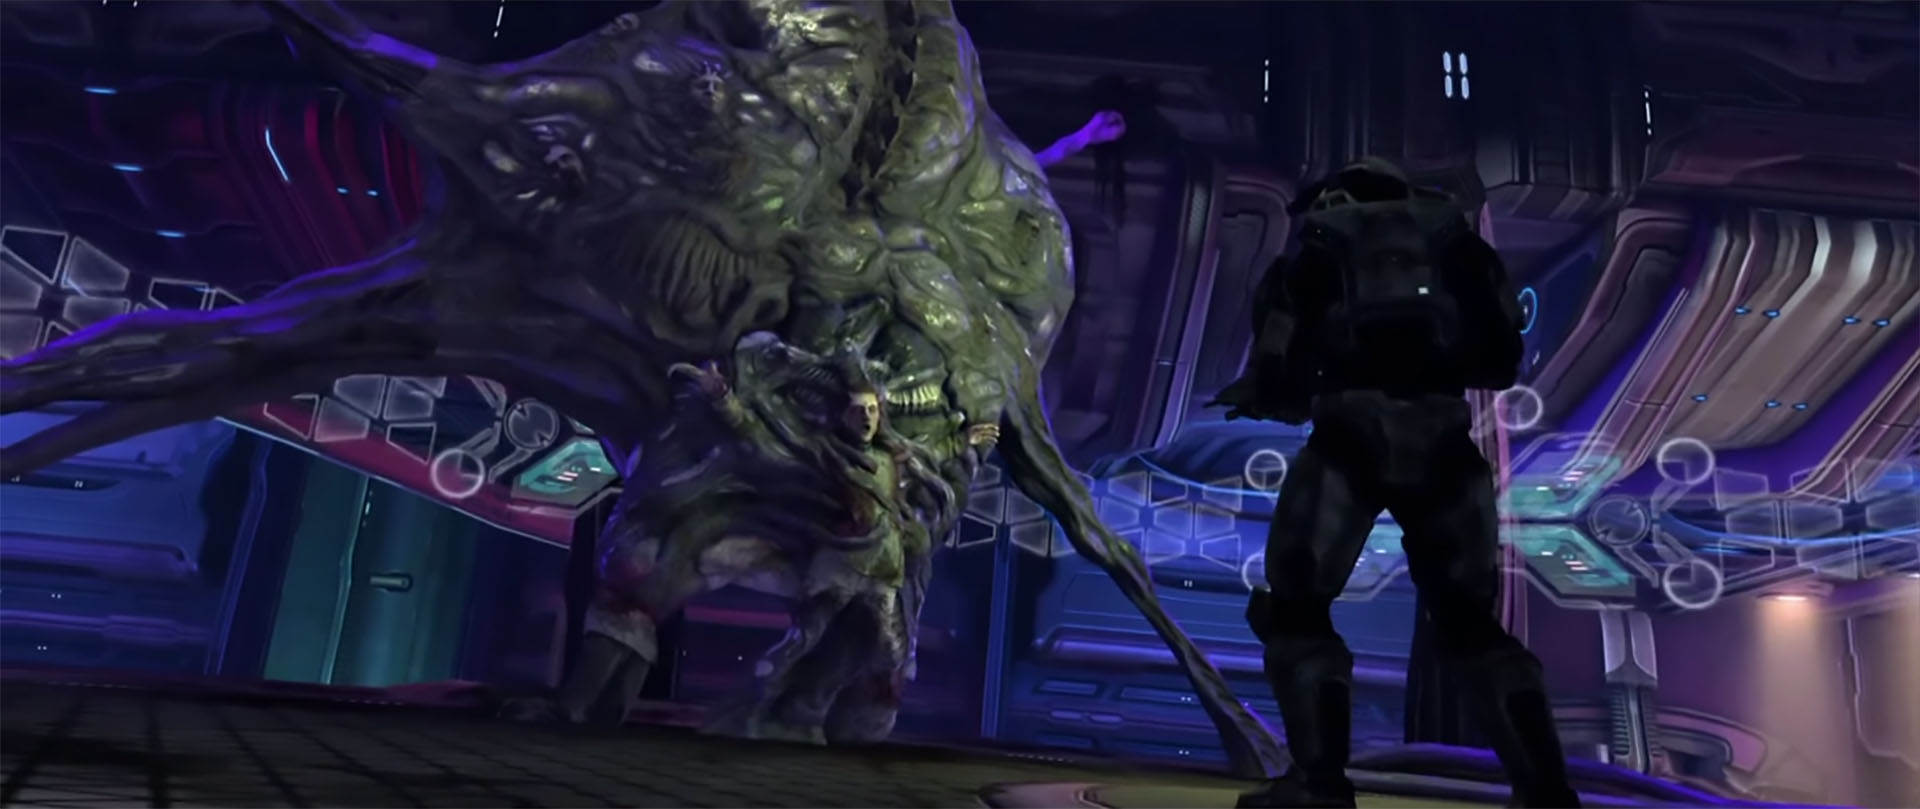 Keyes and the Flood in Halo.